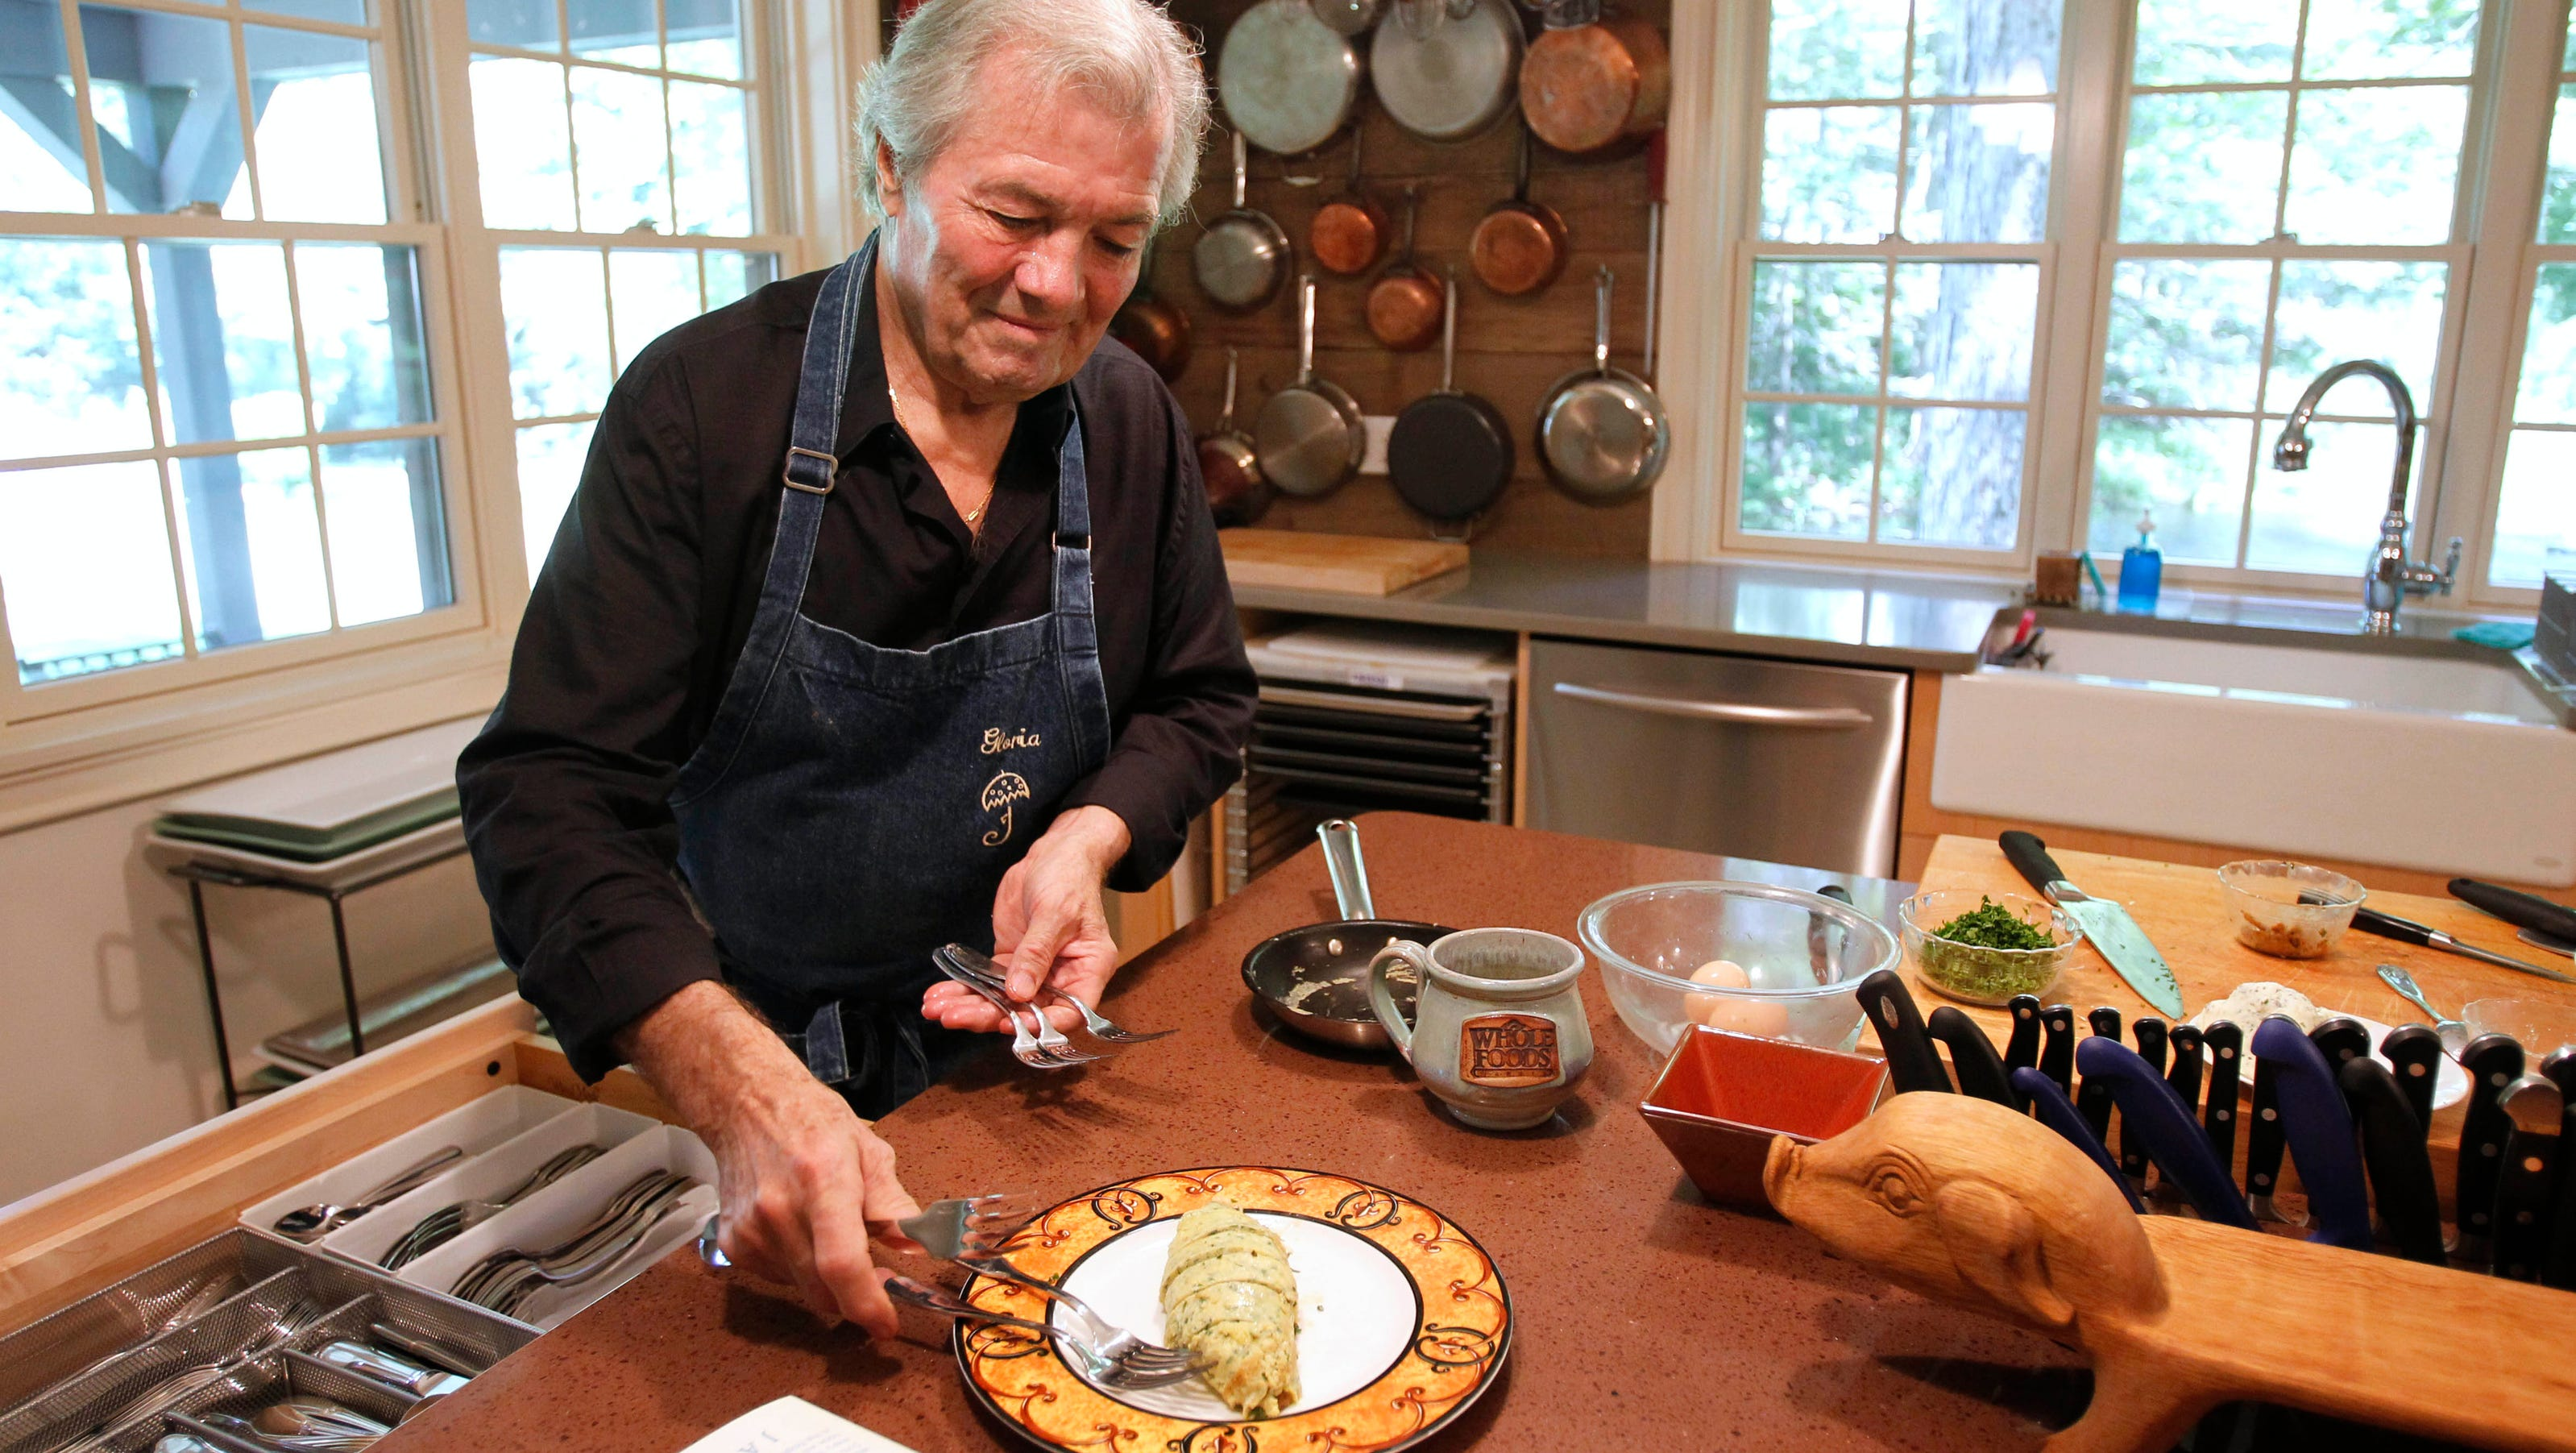 Chef Jacques Pepin to host cruise for foodies